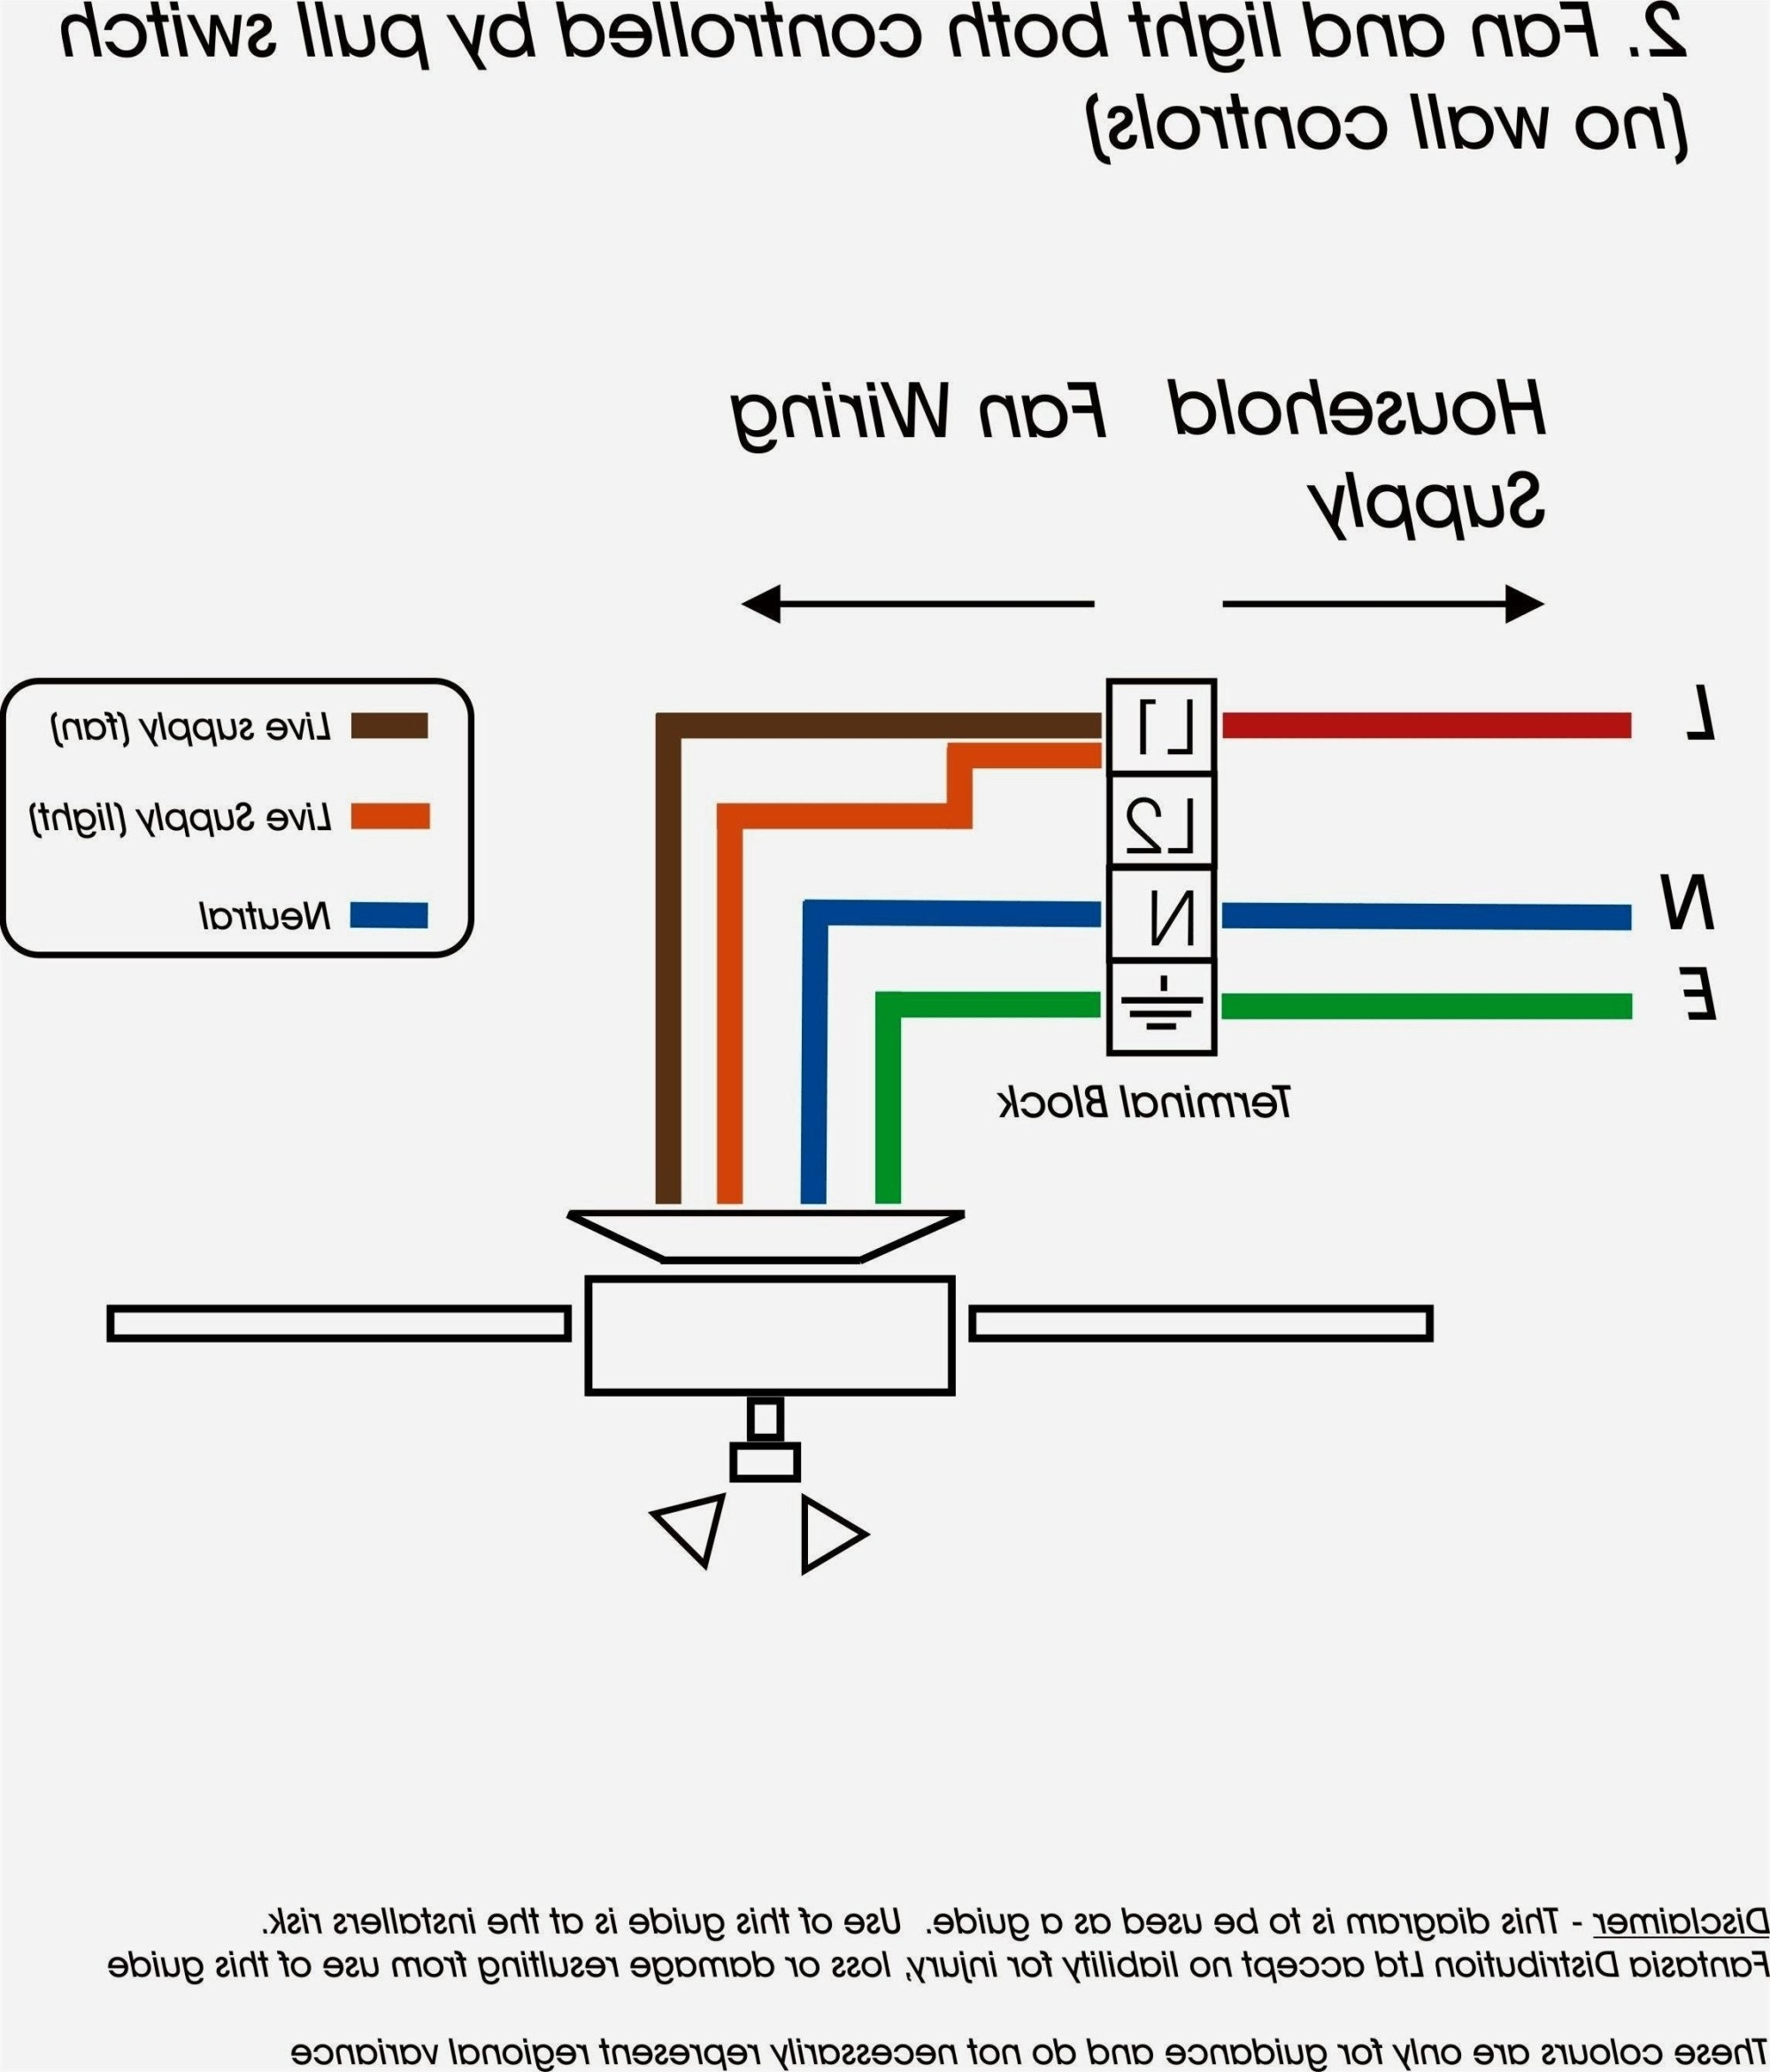 hight resolution of honeywell r845a1030 wiring diagram honeywell wiring diagram app inspirationa wiring diagrams honeywell heating controls archives